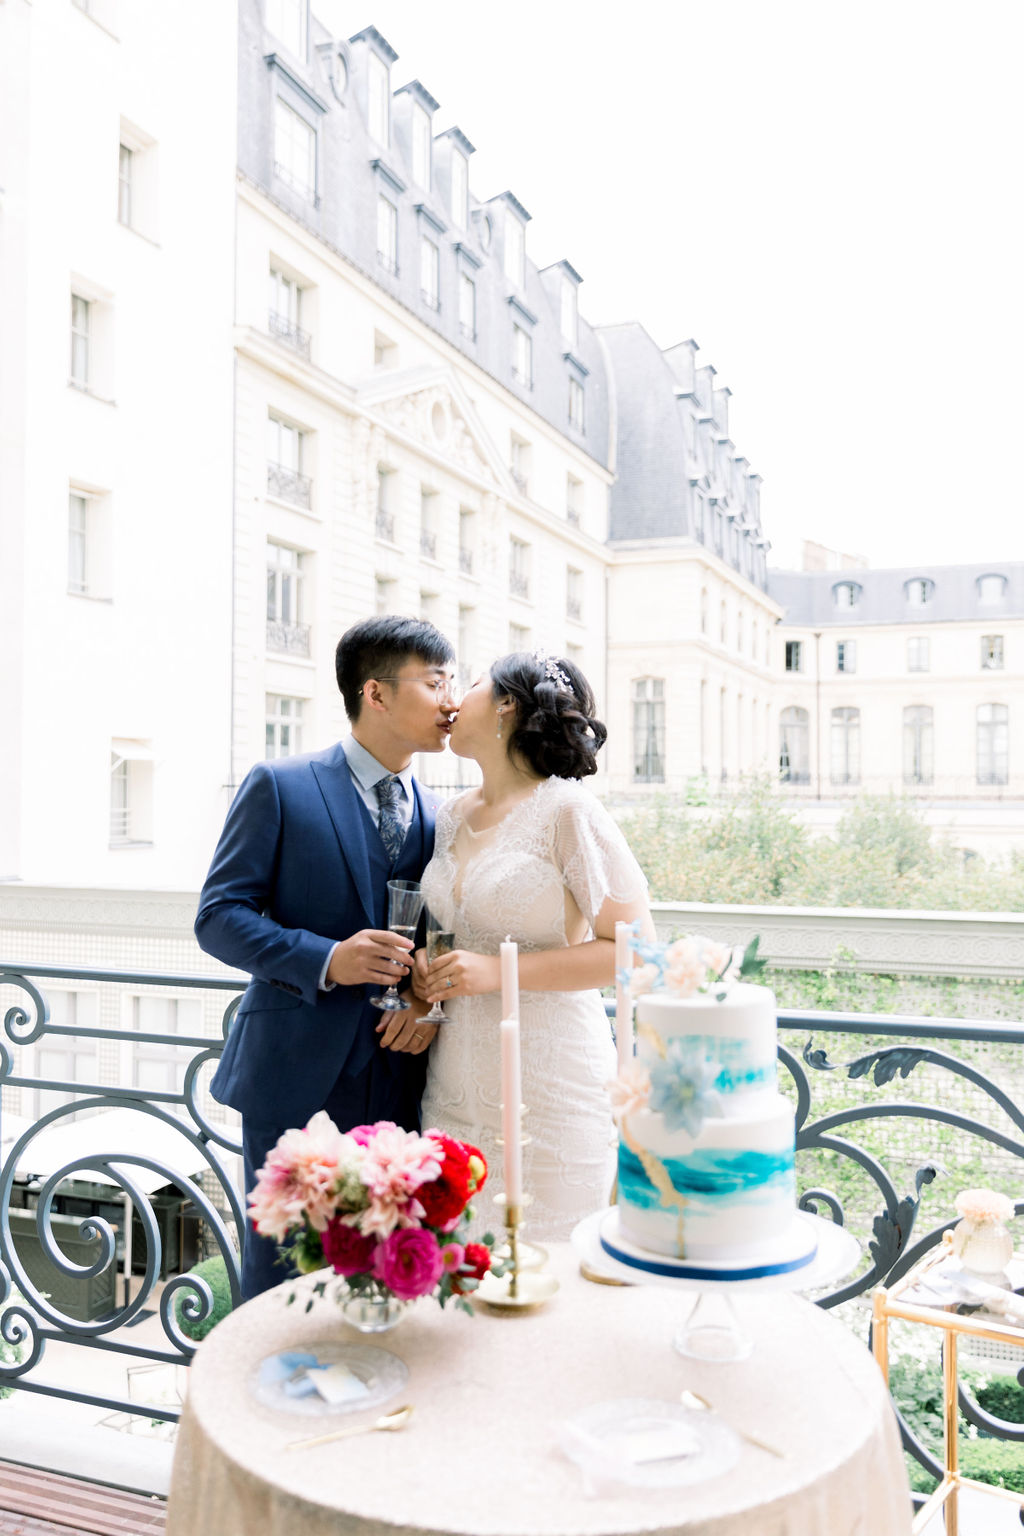 Ritz wedding in Paris